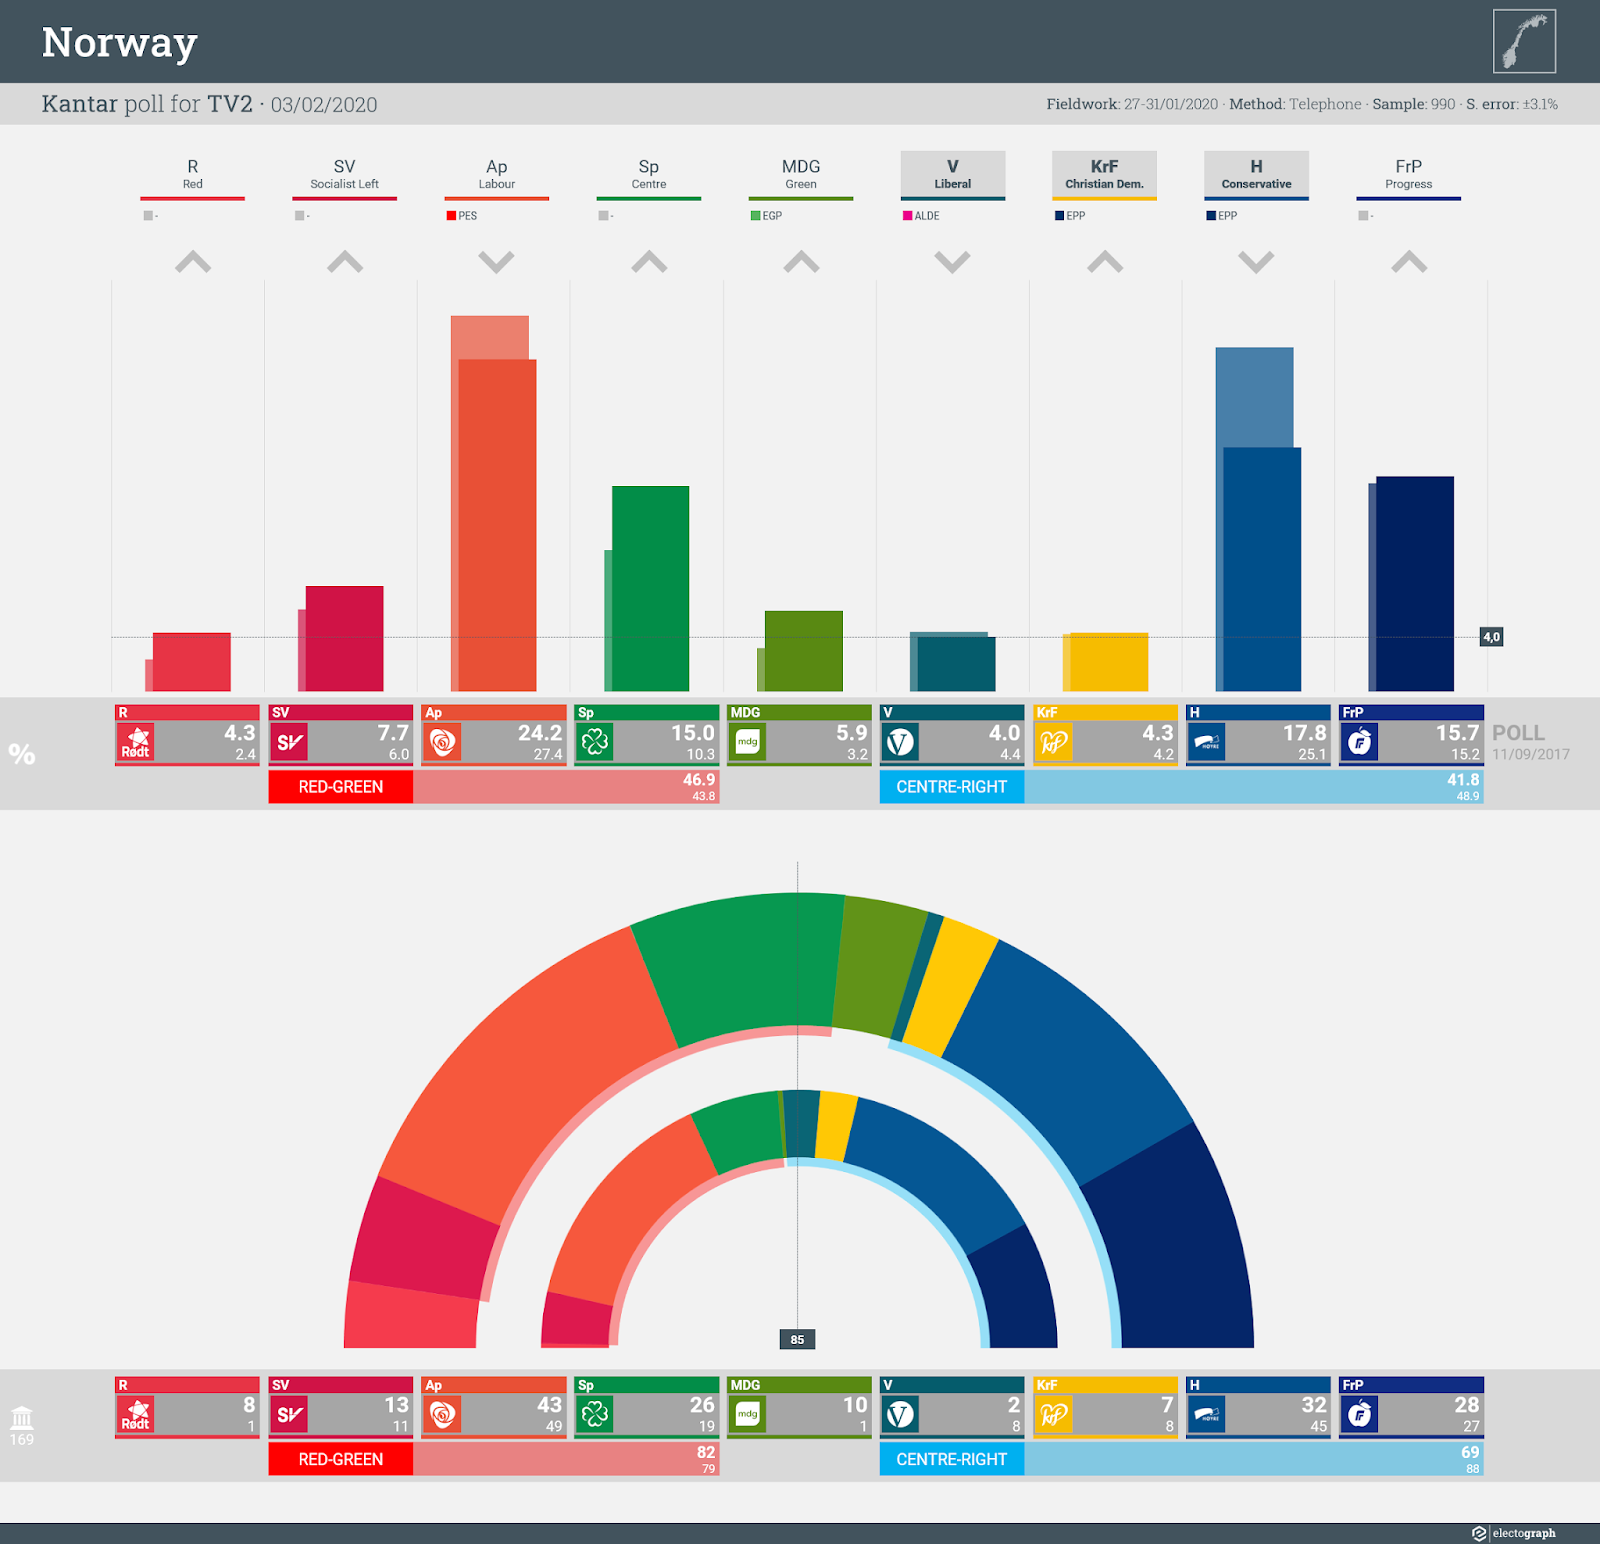 NORWAY: Kantar poll chart for TV2, 3 February 2020